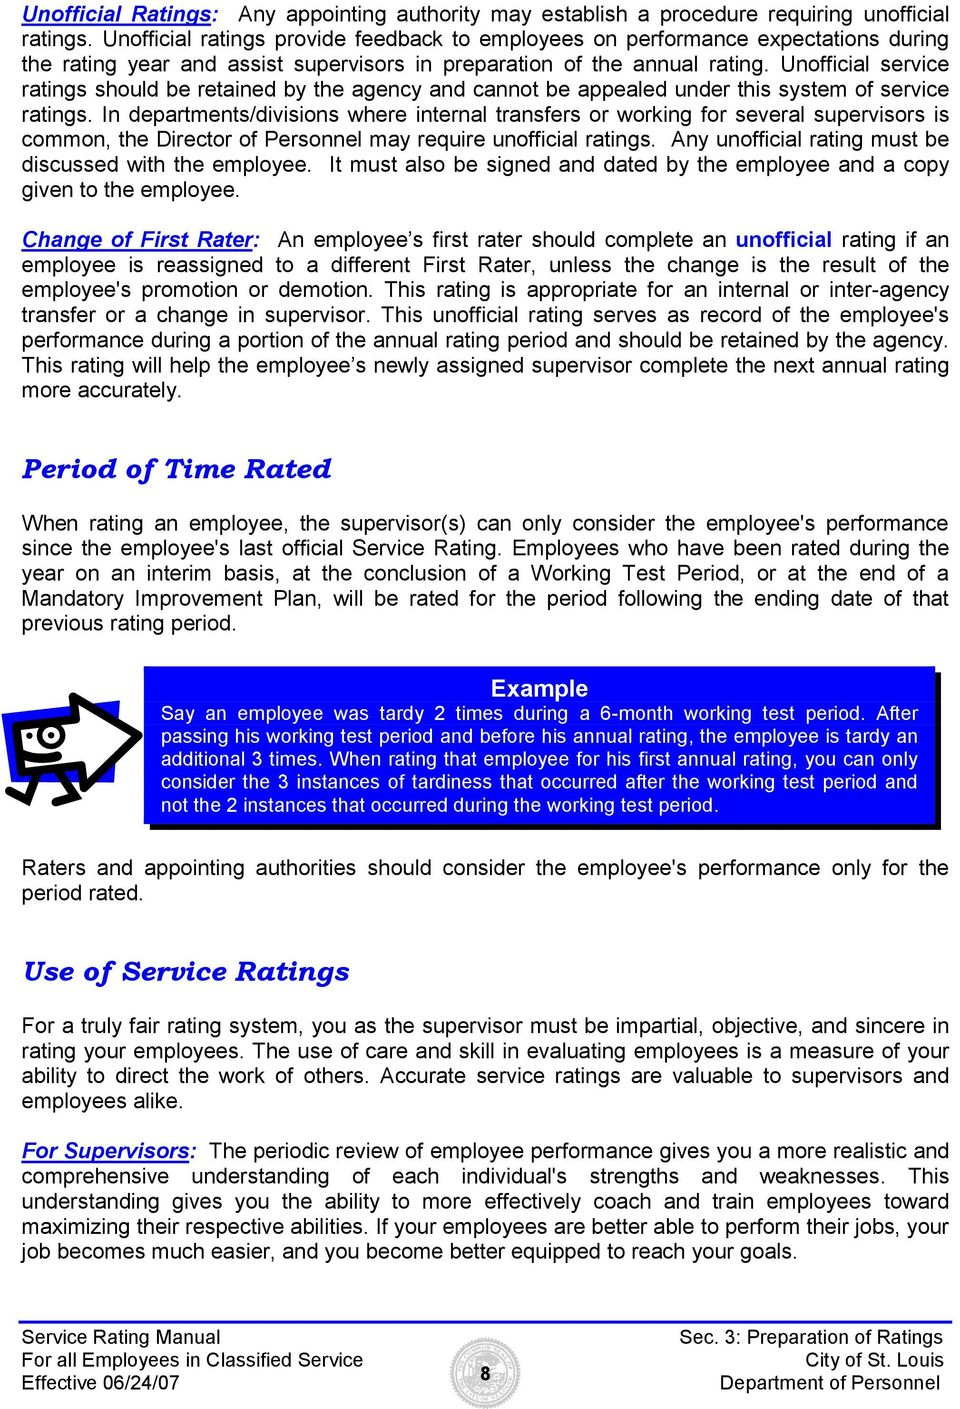 Unofficial service ratings should be retained by the agency and cannot be appealed under this system of service ratings.